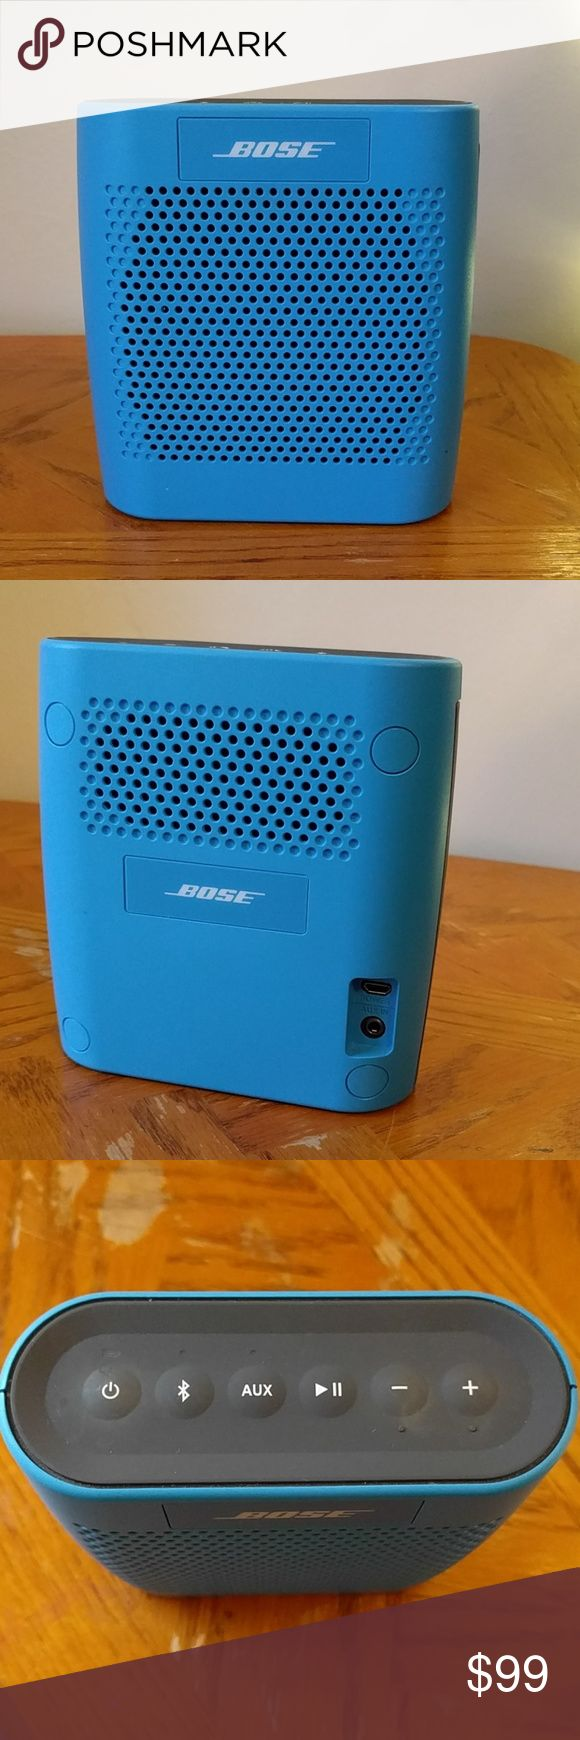 Price drop! BOSE Bluetooth Speaker Bose SoundLink Bluetooth Speaker. Used a handful of times, just no need for it anymore. Fully functioning, water resistant, holds charge for 6 hours. Also has aux cord option. BOSE Other